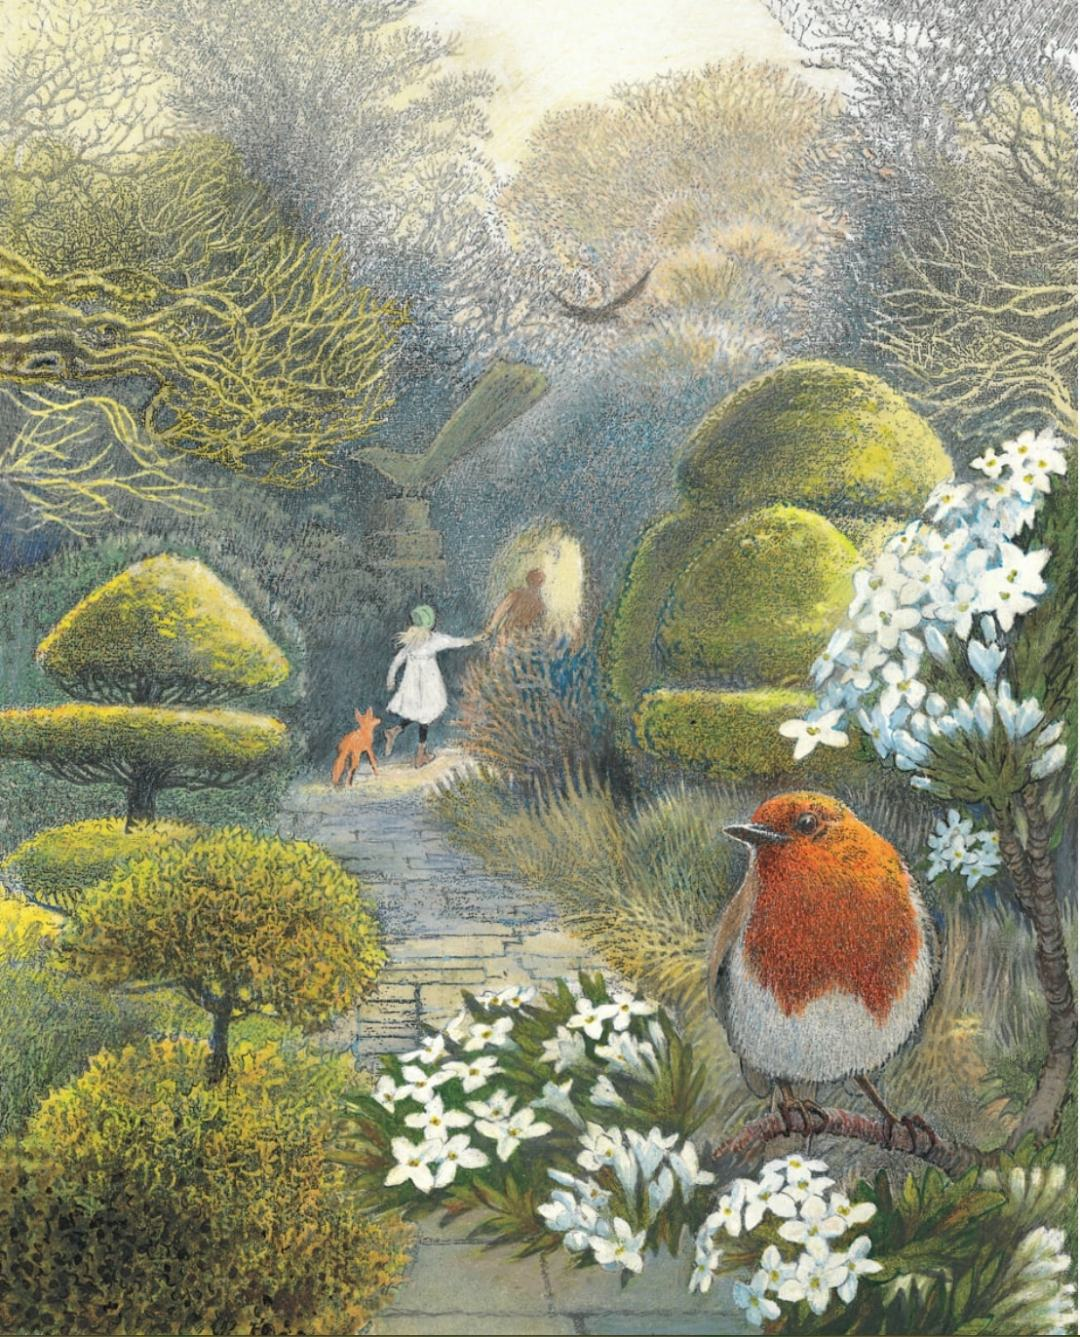 Image: The Secret Garden, Hodgson Burnett, illus. Inga Moore, Walker Books, 2009, frontispiece